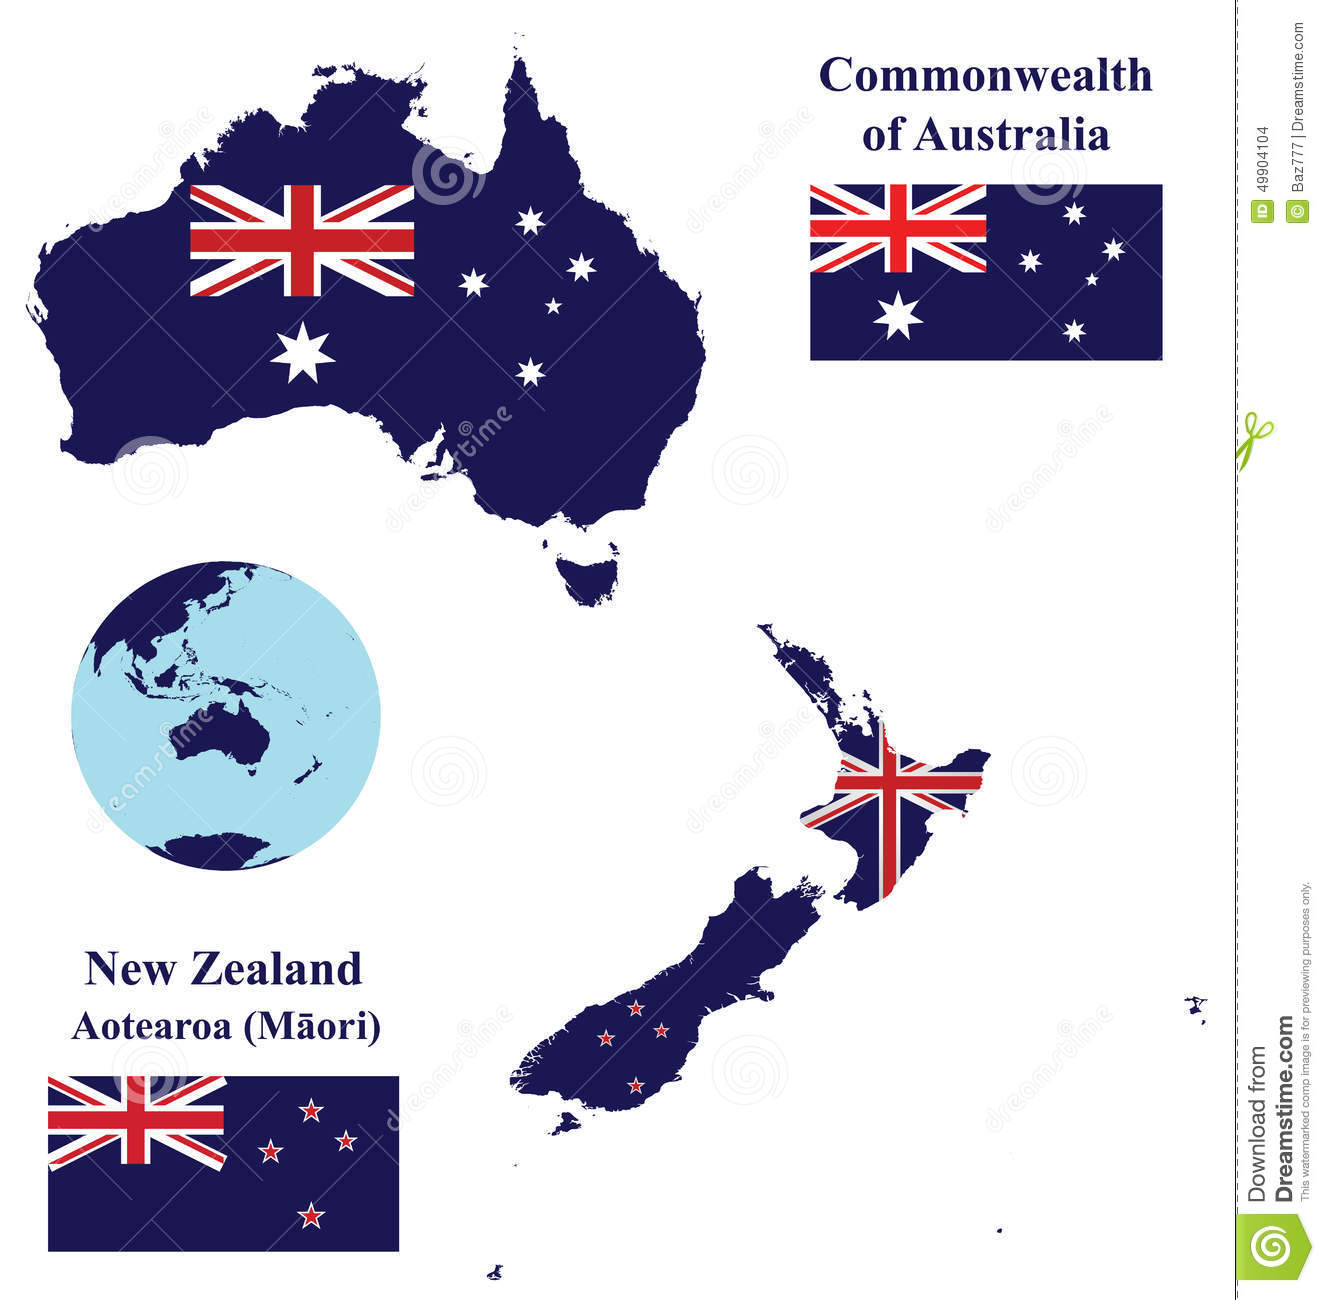 new zeland map with Stock De Ilustracin Australia Y Bandera Del Mapa De Nueva Zelanda Image49904104 on Shownews871815 likewise LocationPhotoDirectLink G616351 I19481623 Tongariro National Park Manawatu Wanganui Region North Island moreover Hauptstadt Neuseeland 190433 also Royalty Free Stock Images New Zealand Cuisine Image19589839 likewise .